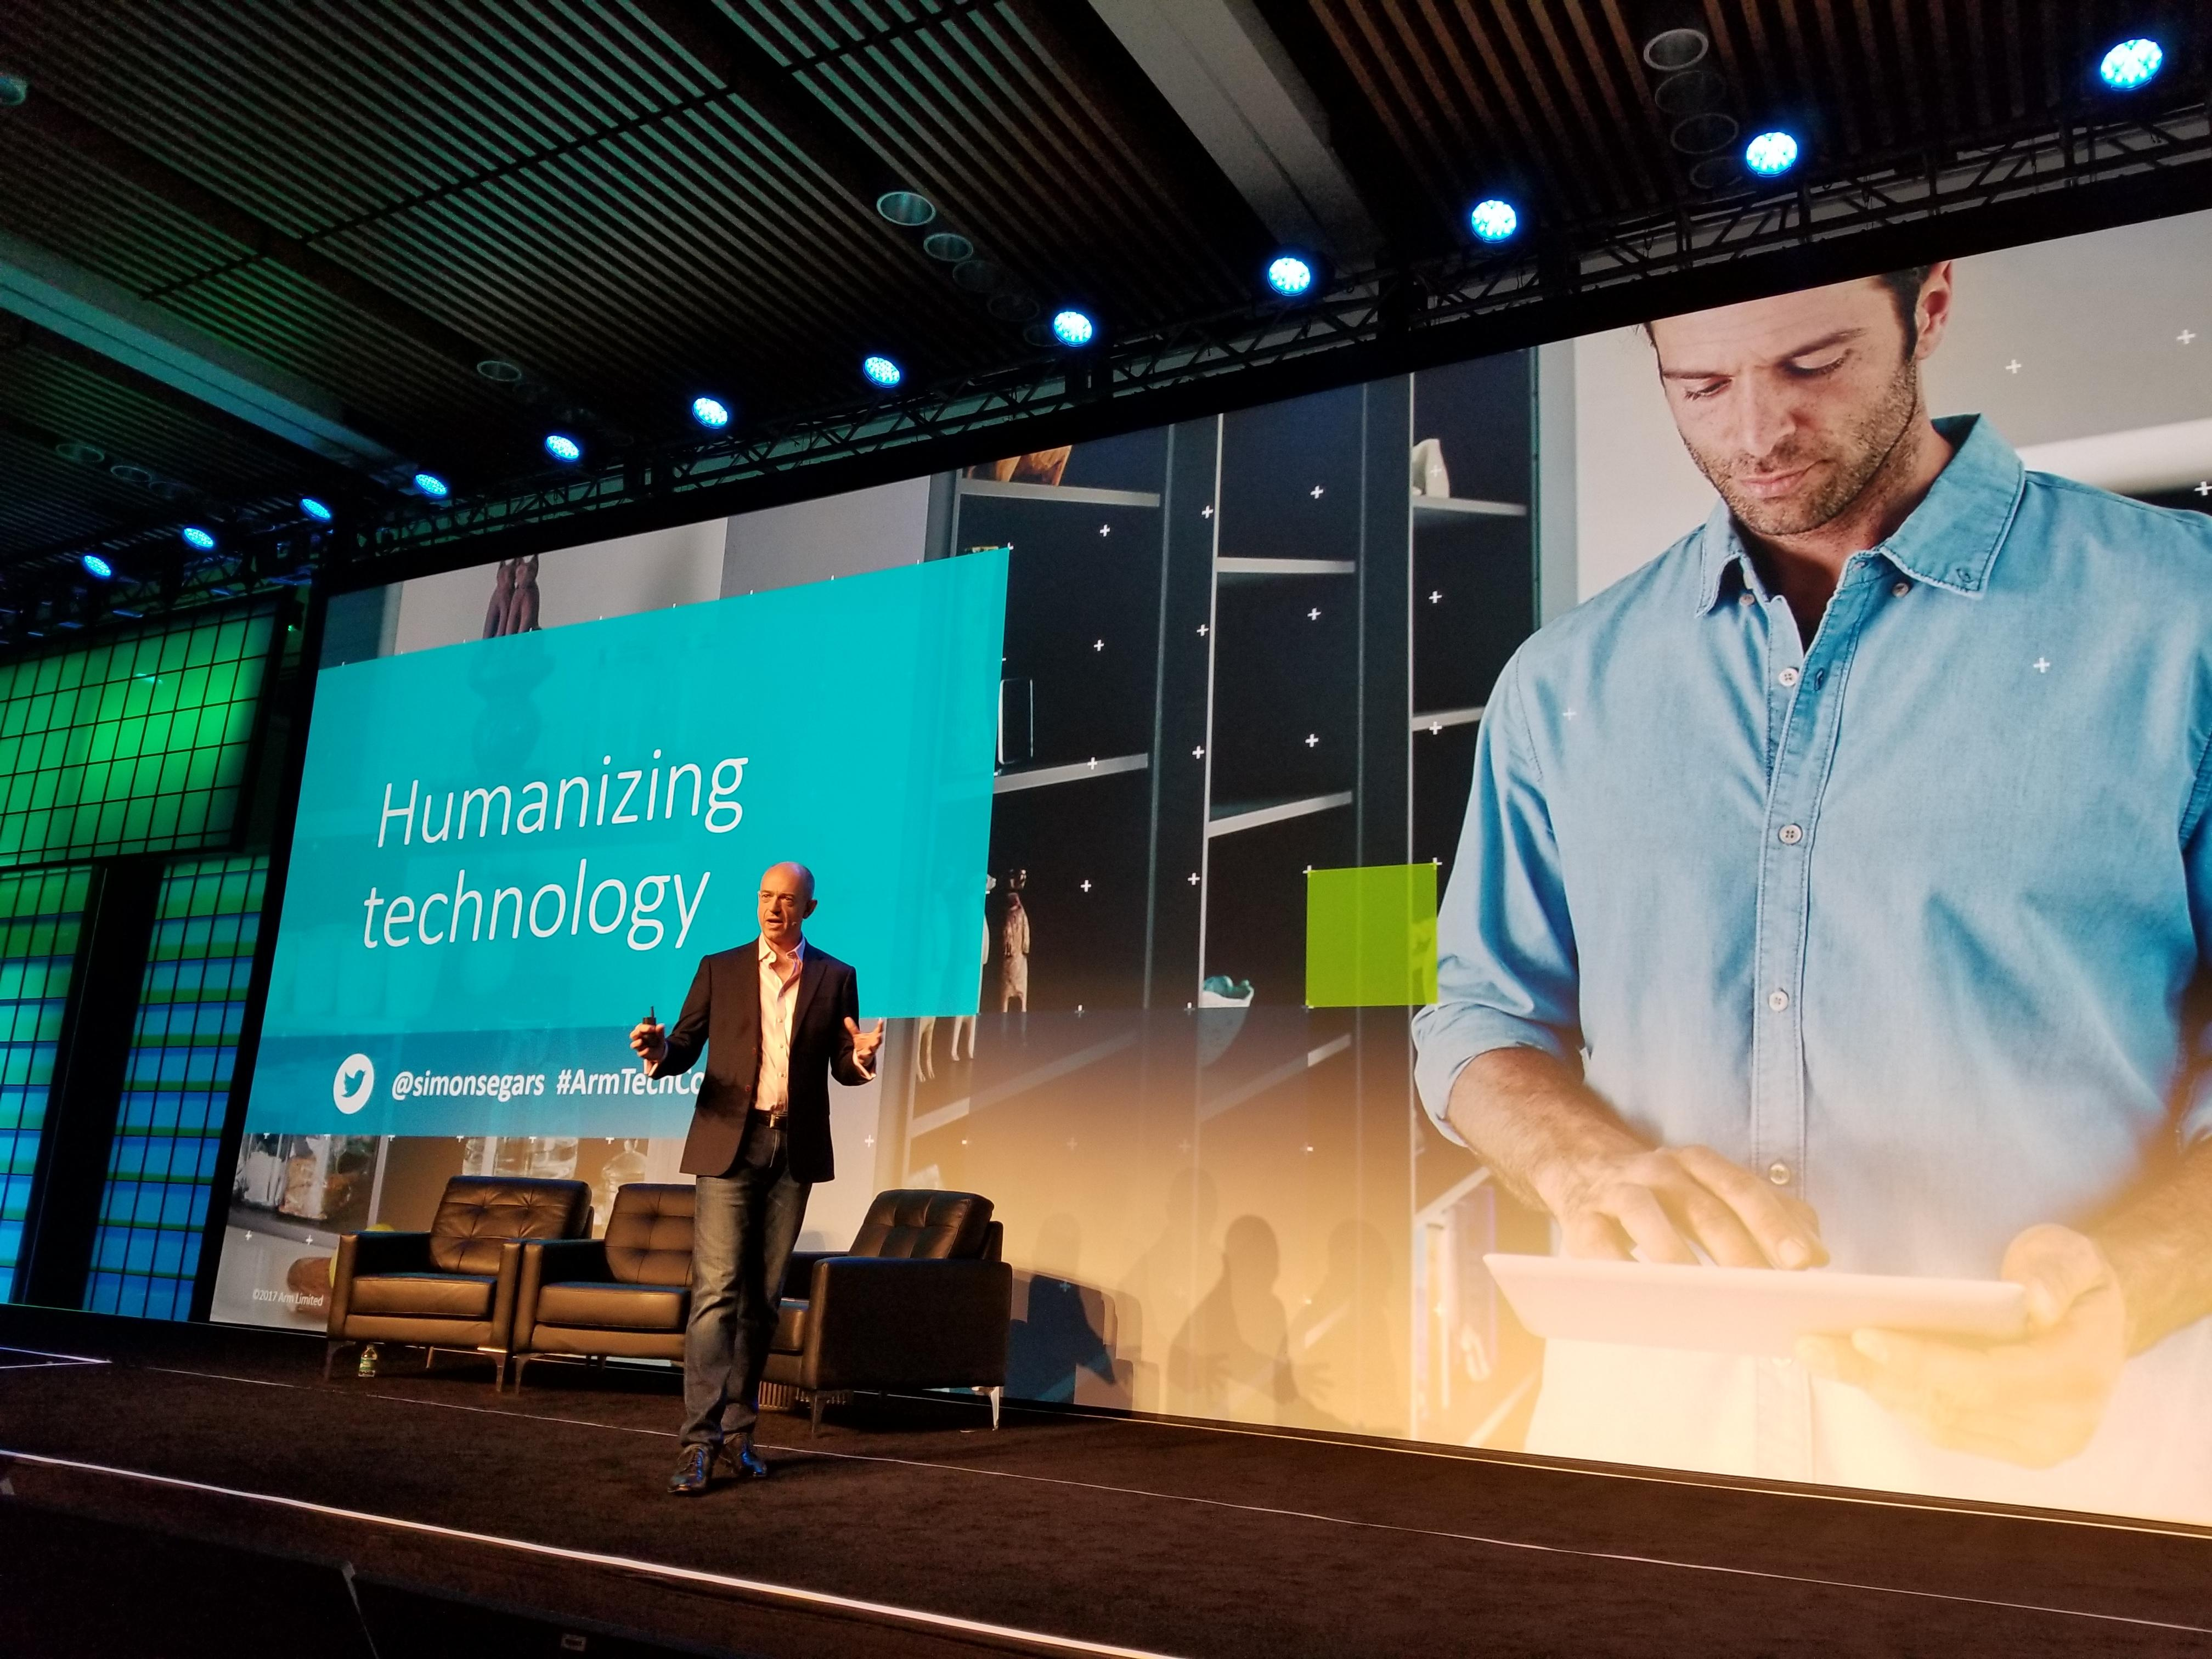 <p>ARM CEO Simon Segars says cybersecurity is a major issue for artificial intelligence and the Internet of Things.</p>